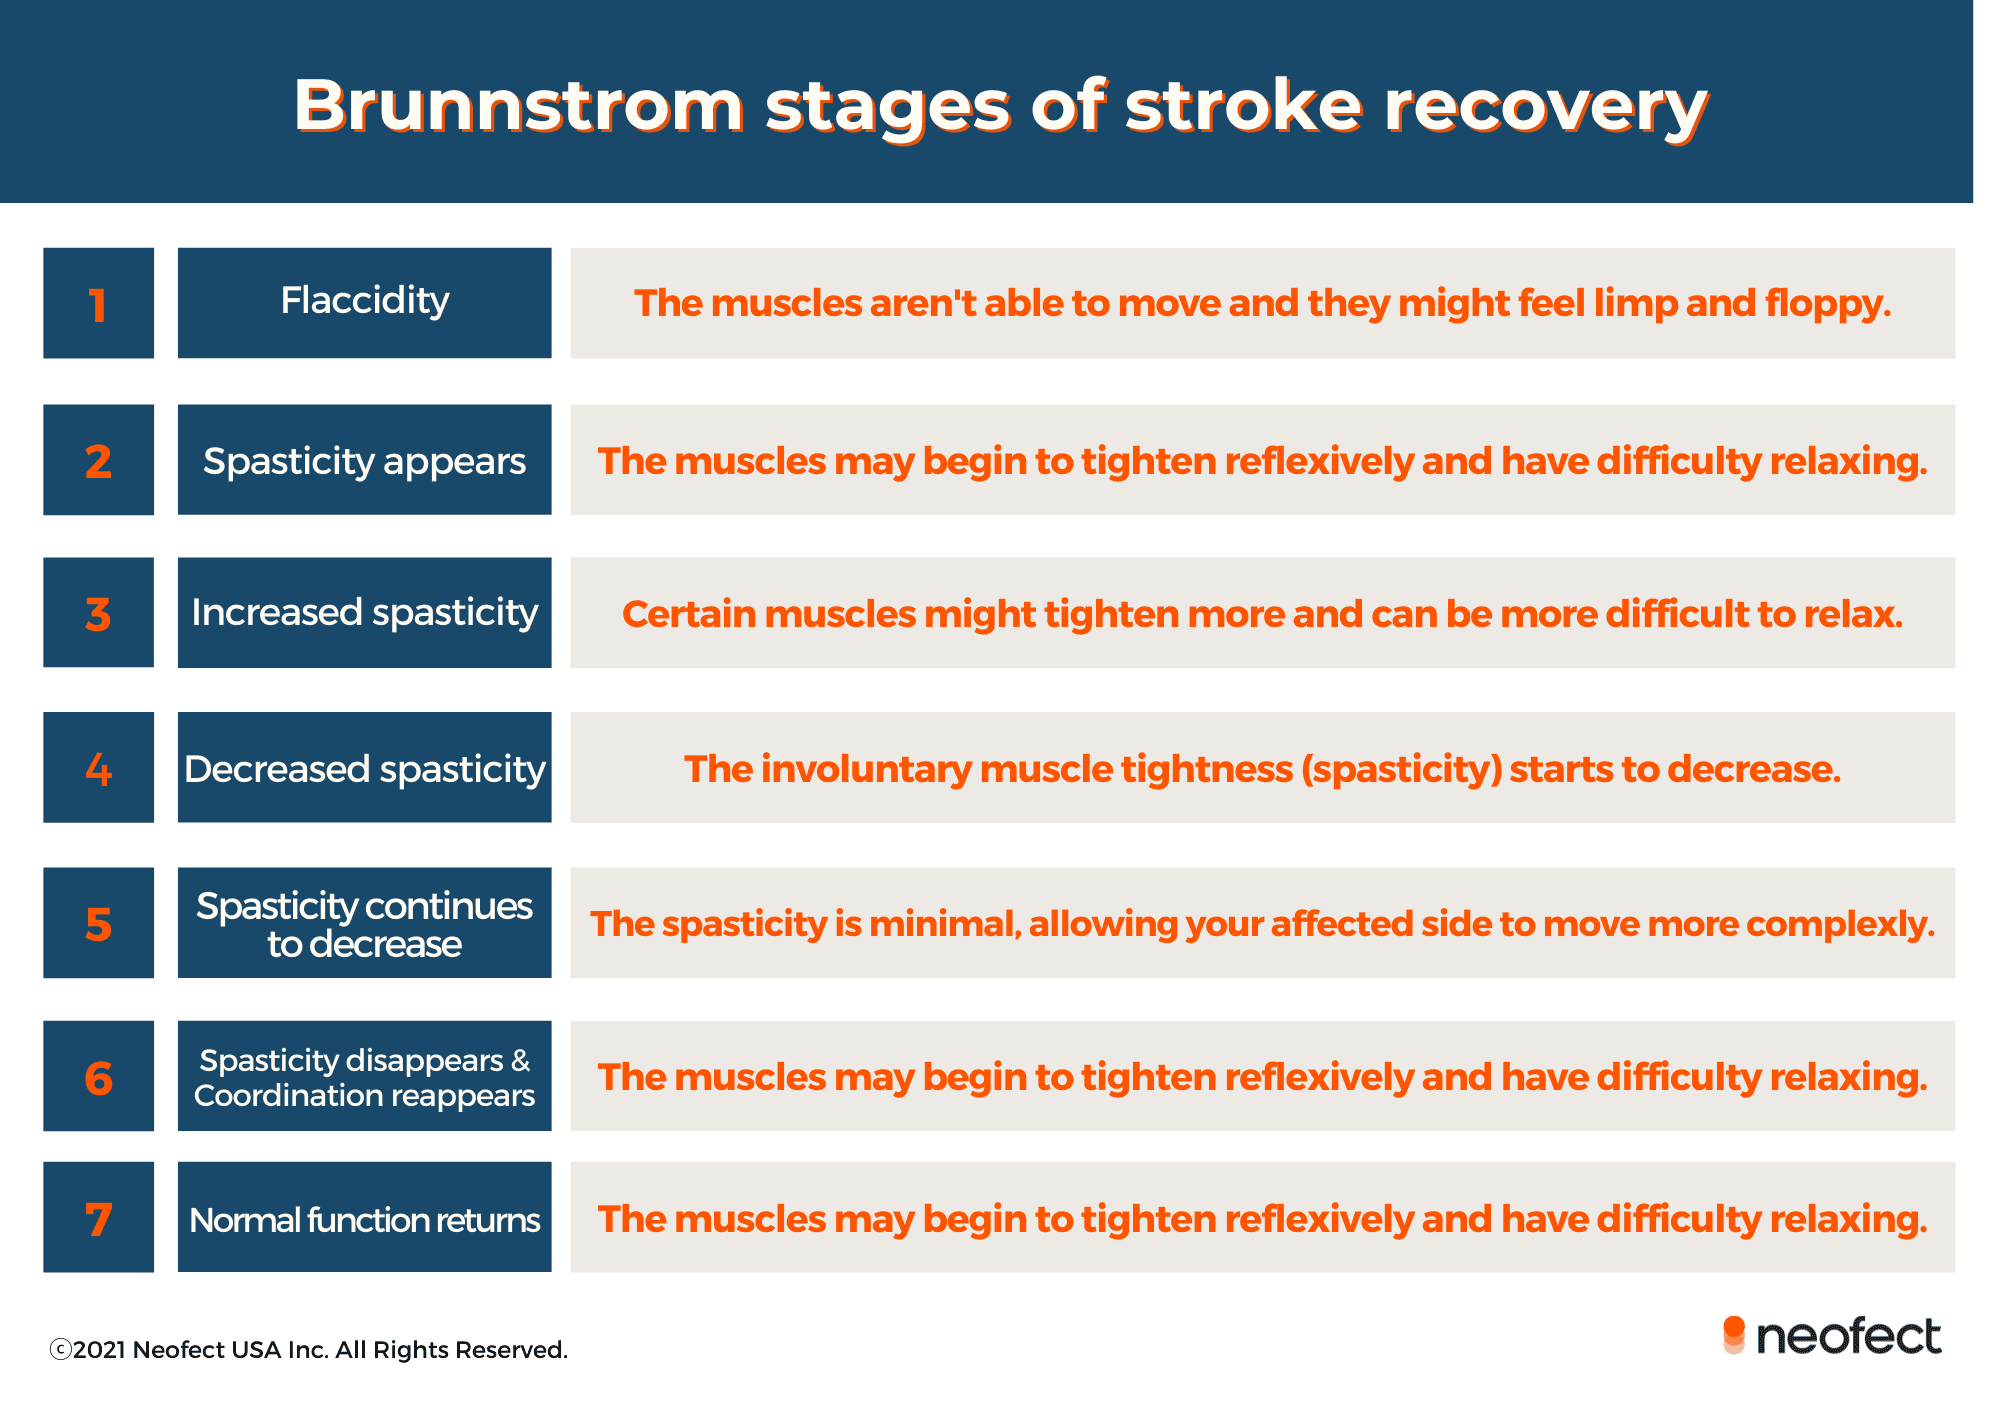 Brunnstrom-stages-of-stroke-recovery-by-neofect